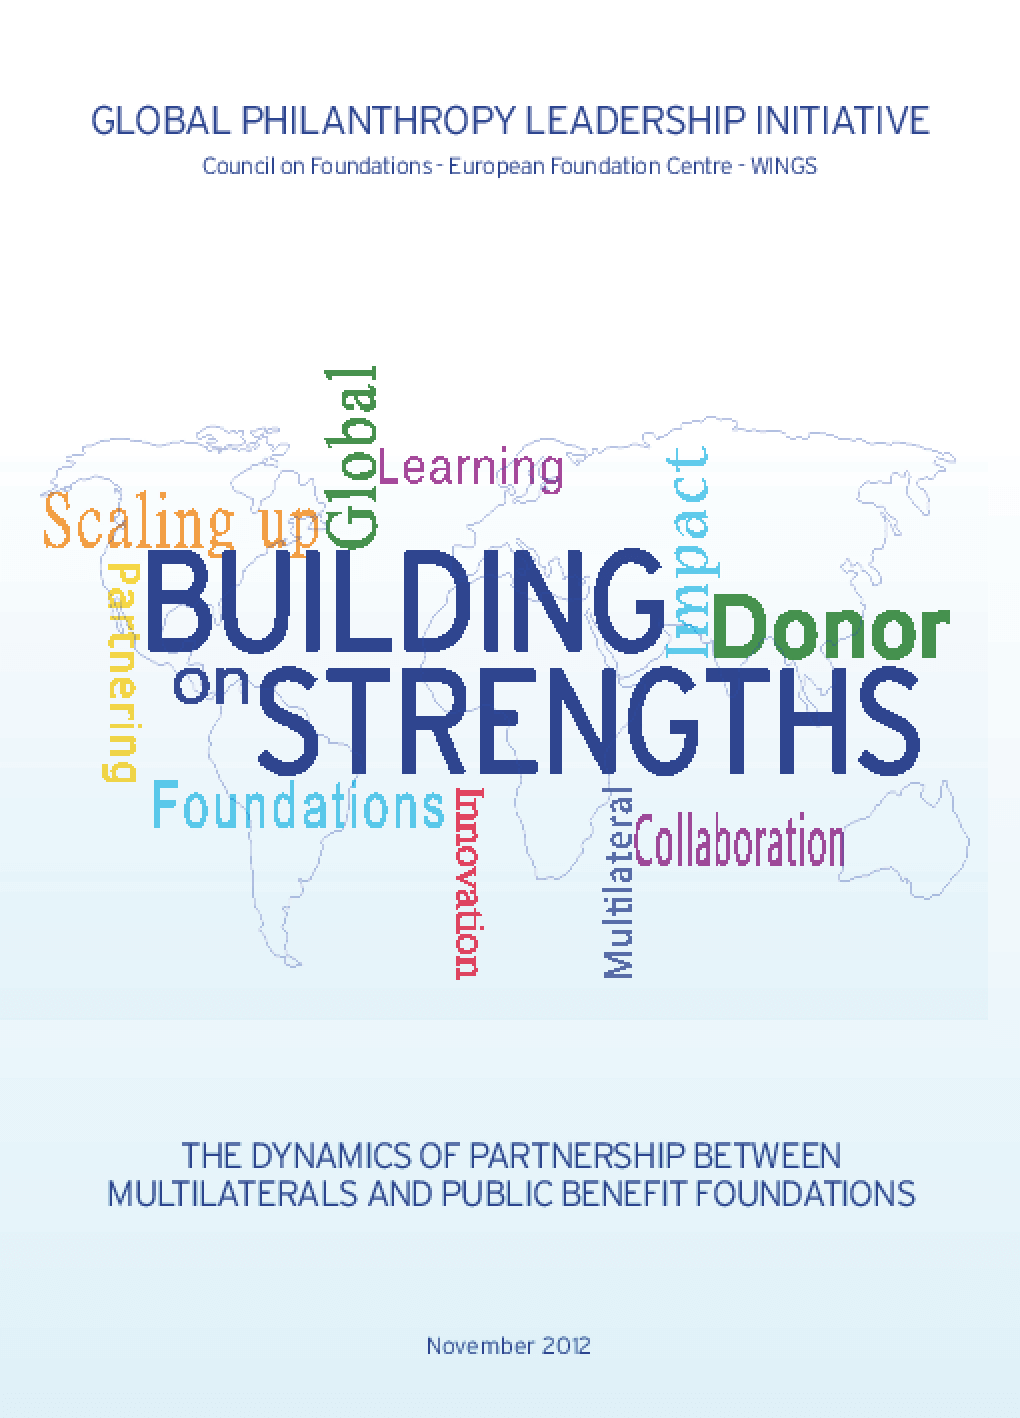 Building on Strengths: The Dynamics of Partnership Between Multilaterals and Public Benefit Foundations